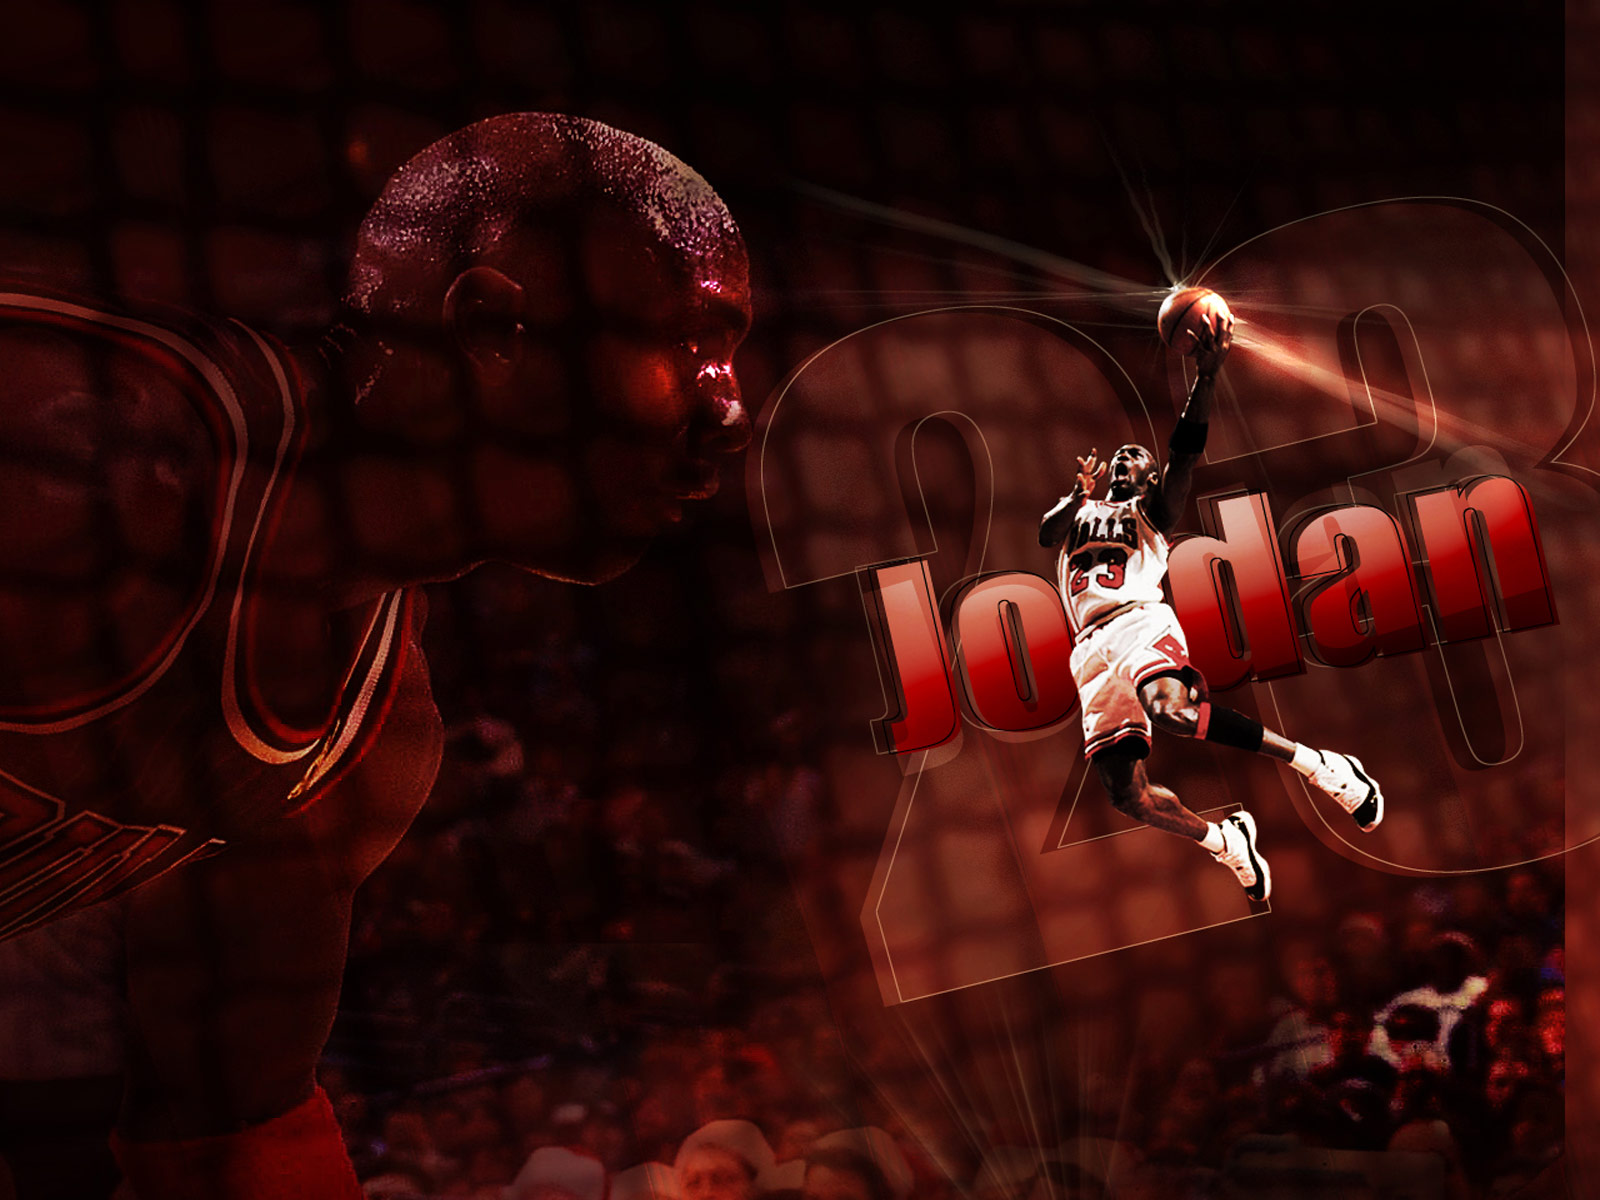 related michael jordan sky dunk widescreen 05 29 2011 michael jordan 1600x1200